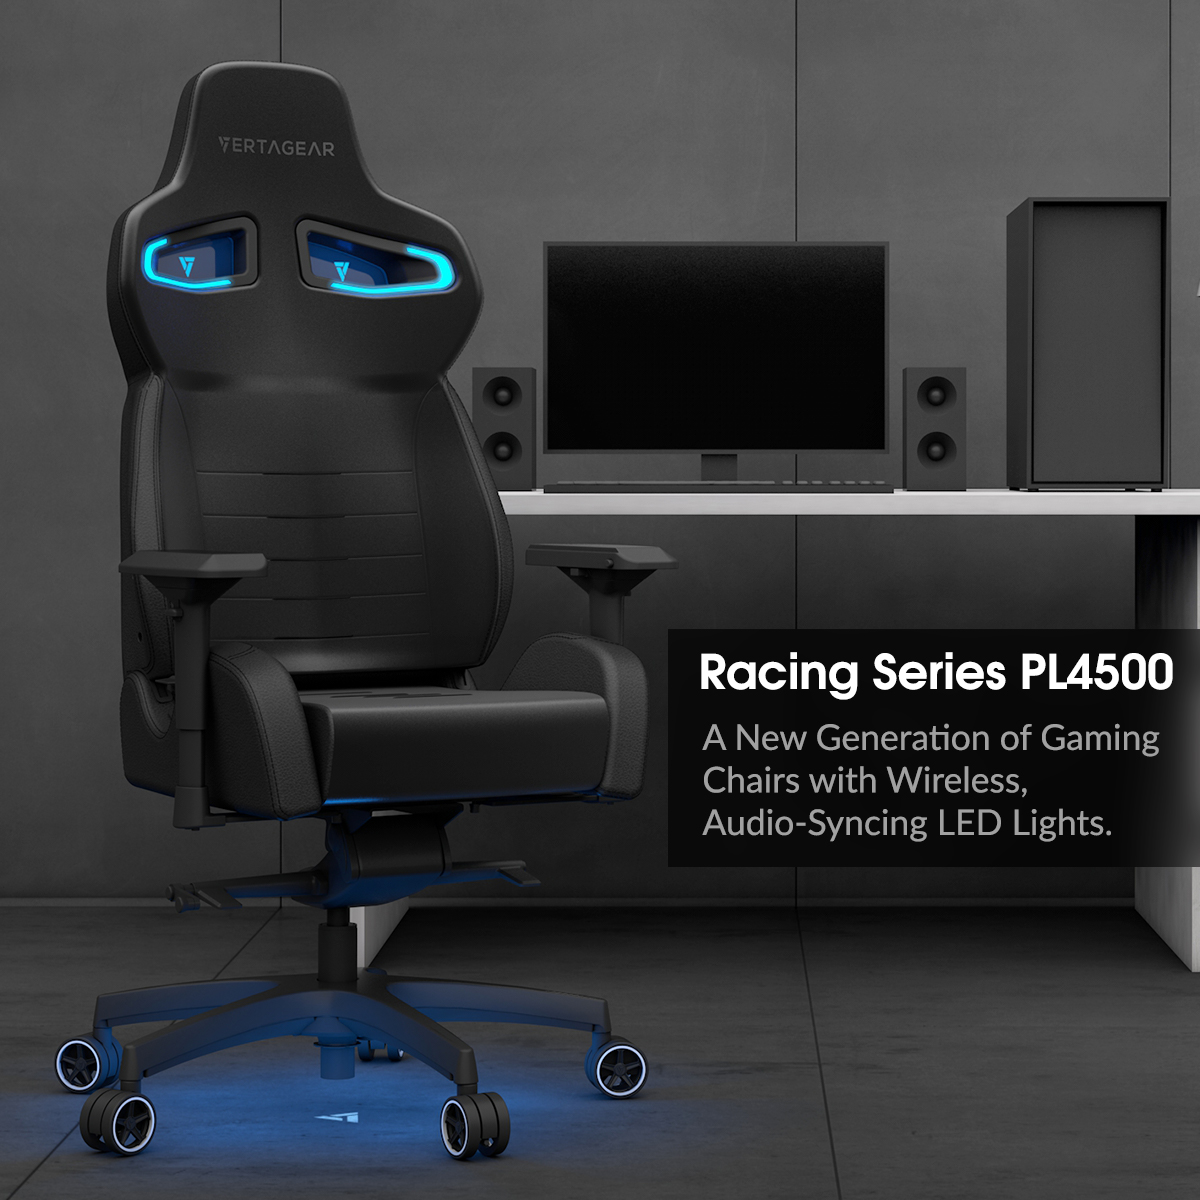 Amazing Vertagear Pl4500 The First Wireless Rgb Gaming Chair Short Links Chair Design For Home Short Linksinfo